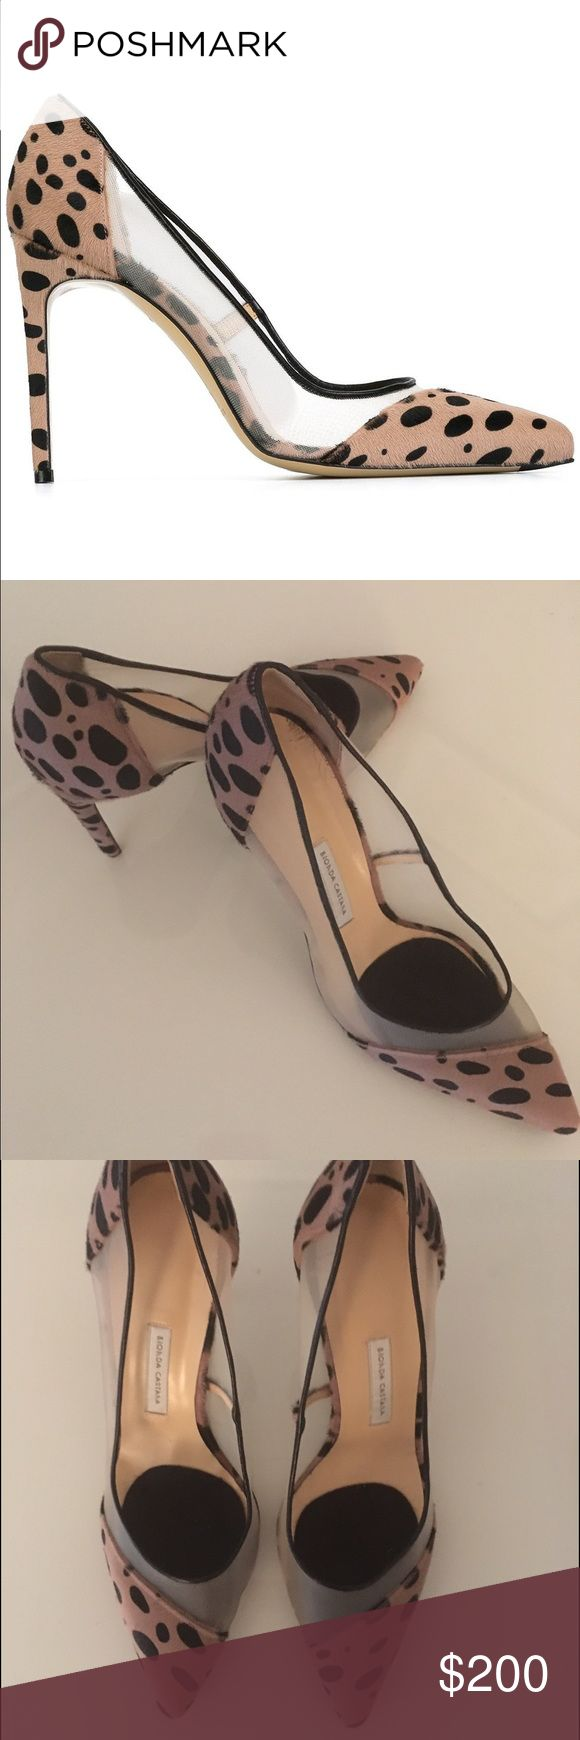 """Bionda Castana Leopard Calf Hair/Mesh Stilettos Sexy 4"""" stilettos by Bionda Castana. Calf hair leopard pattern outer with kid leather lining. Worn once, inside, for a couple of hours. Excellent condition! Bionda Castana Shoes Heels"""